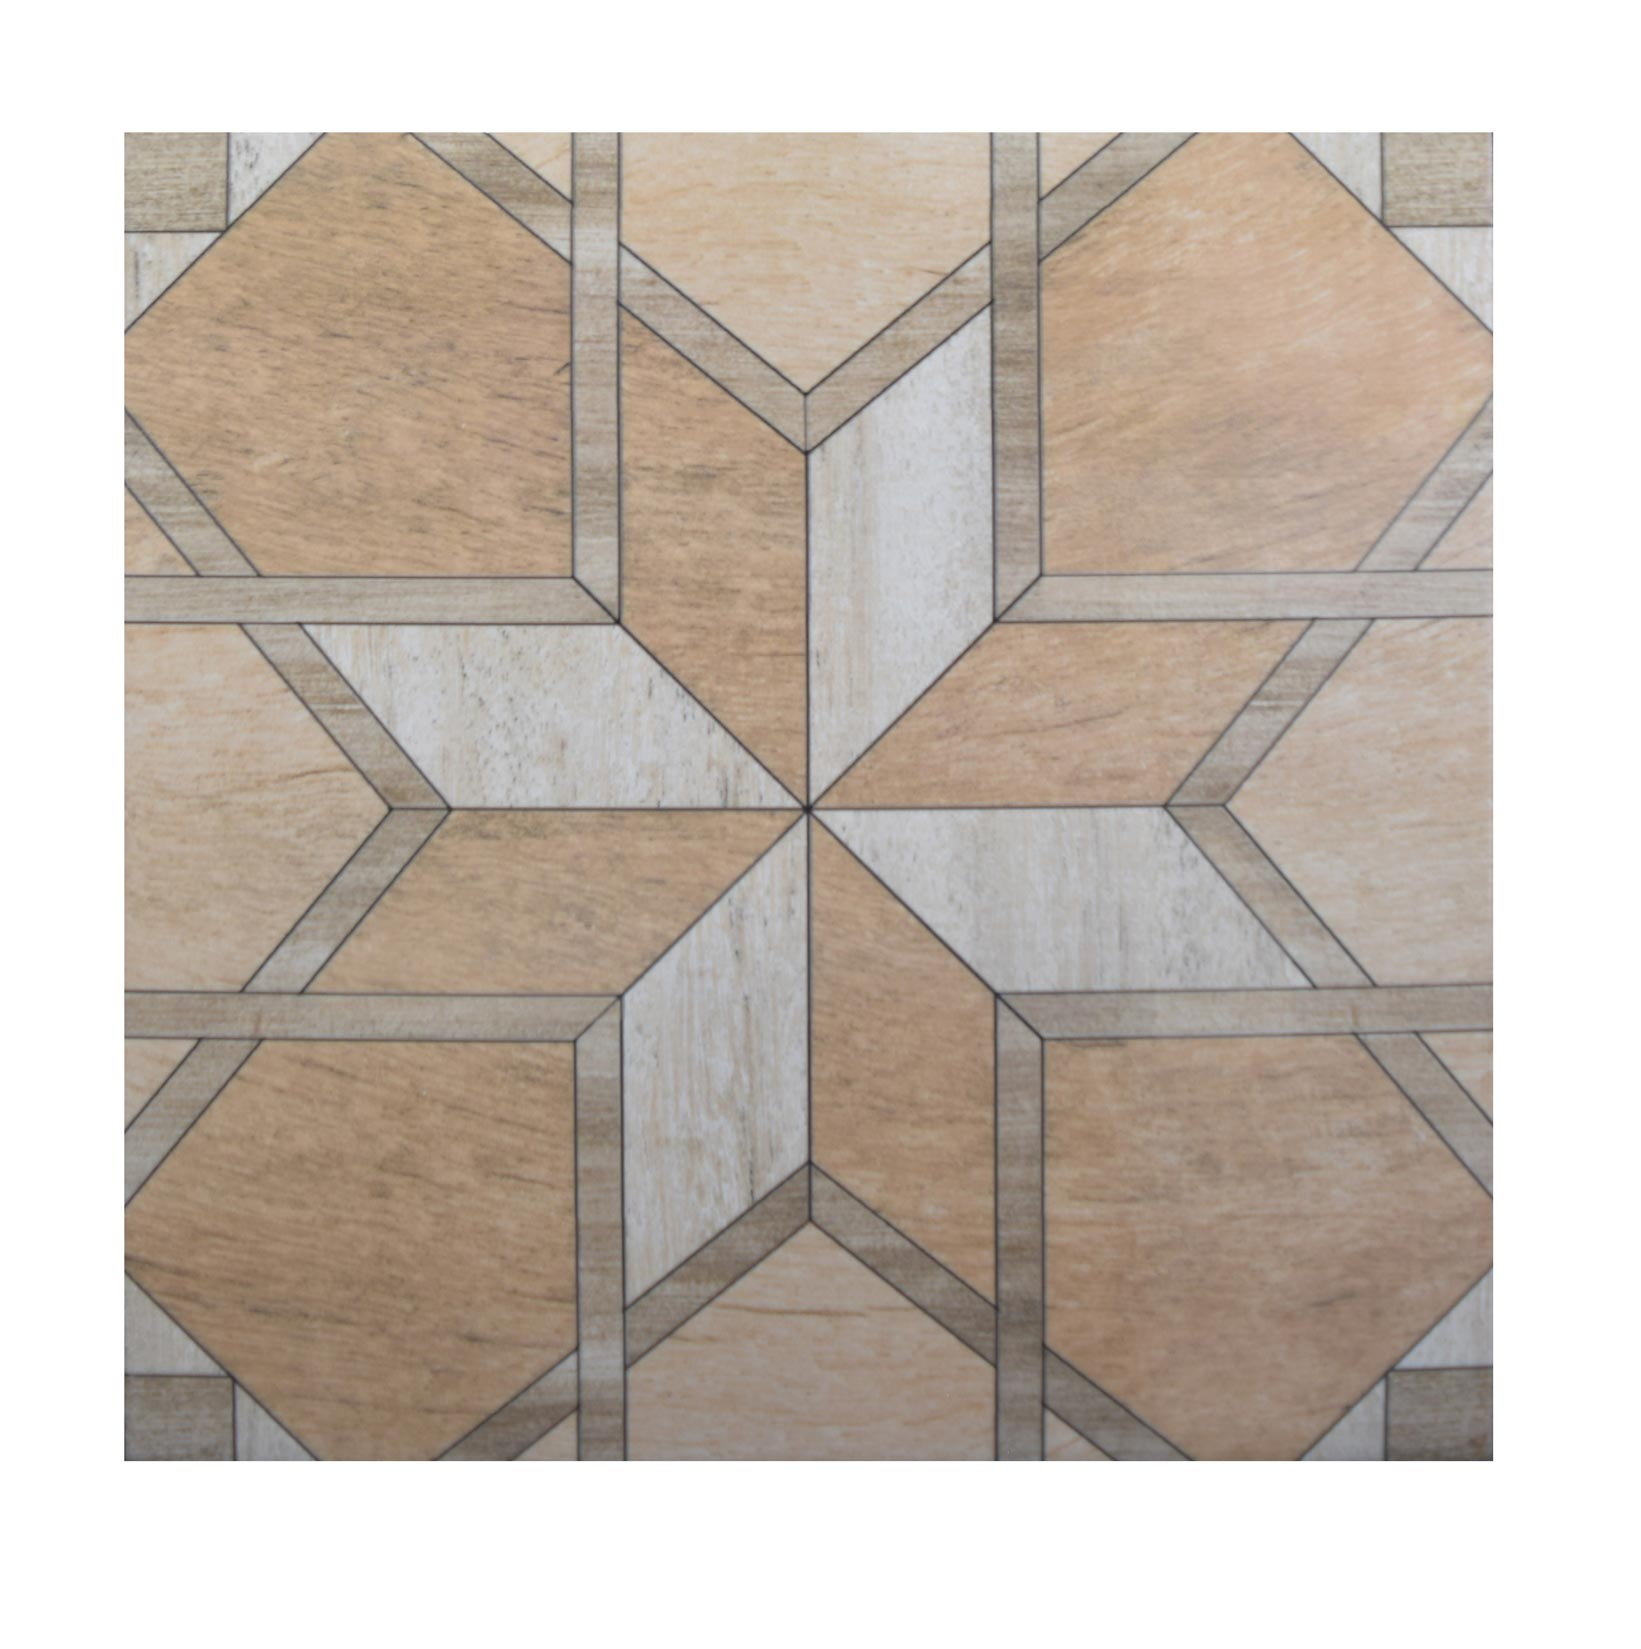 18 x 18 ceramic floor tile